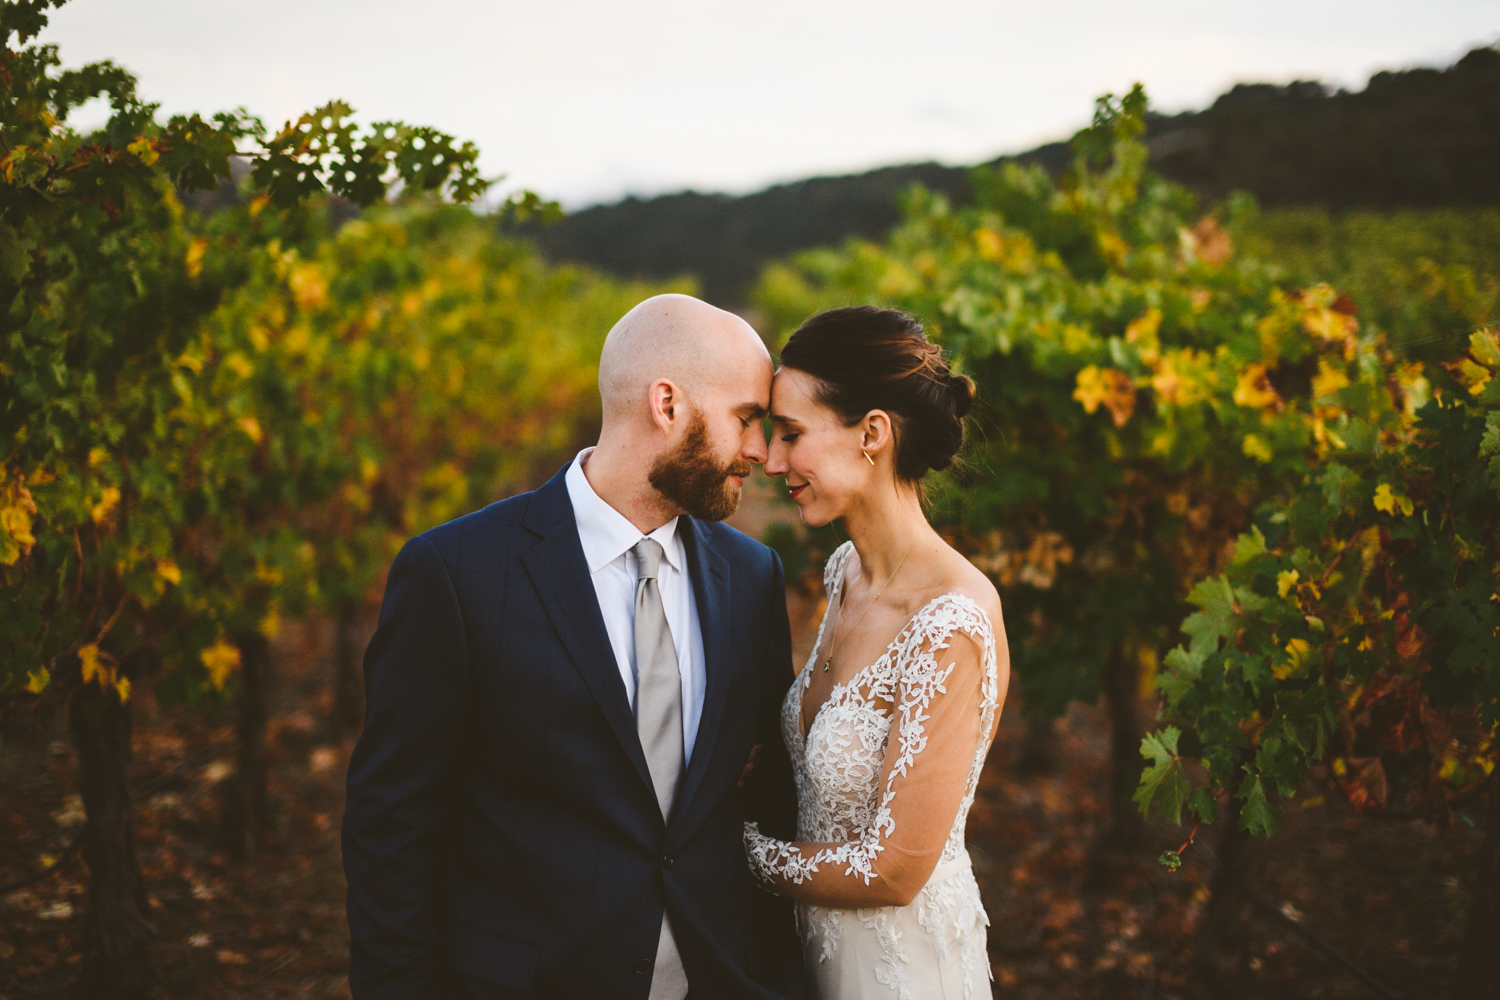 024 - bride and groom close their eyes and share an intimate moment near vineyard at clos la chance wines in san jose california.jpg